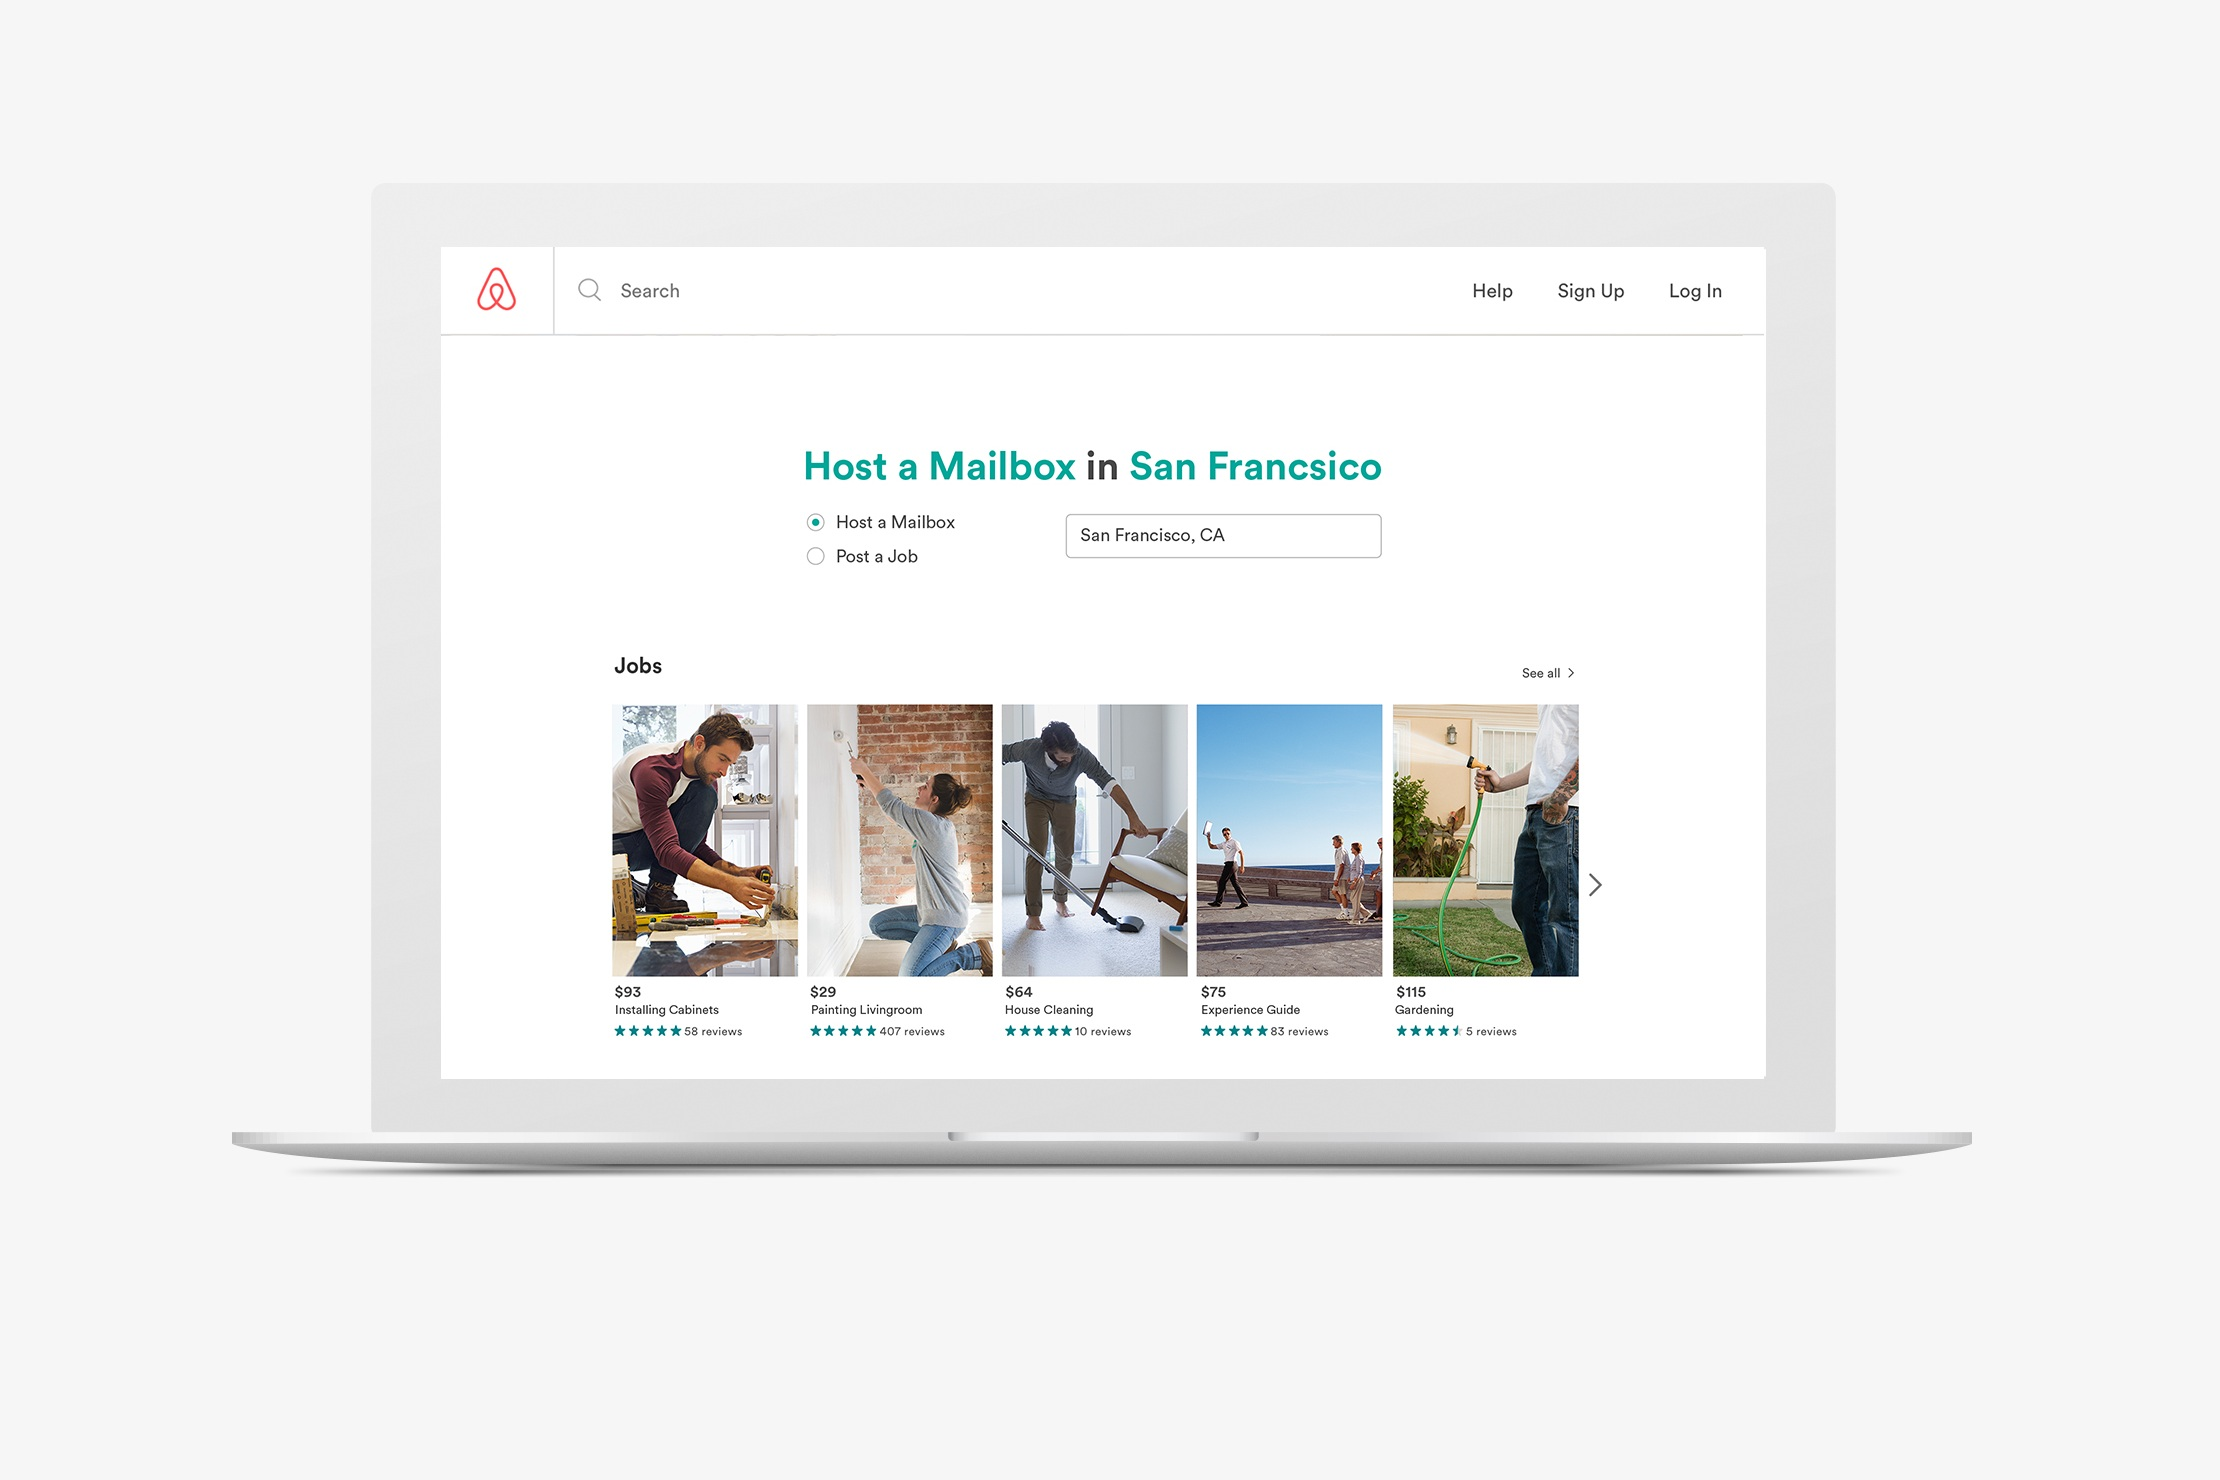 III. - Establishing a new cycle.To keep people from falling back into a homeless situation, Airbnb will also help employ those in need by creating a section of Airbnb.com where hosts can post jobs they need done around their property or sponsored ones within the community.